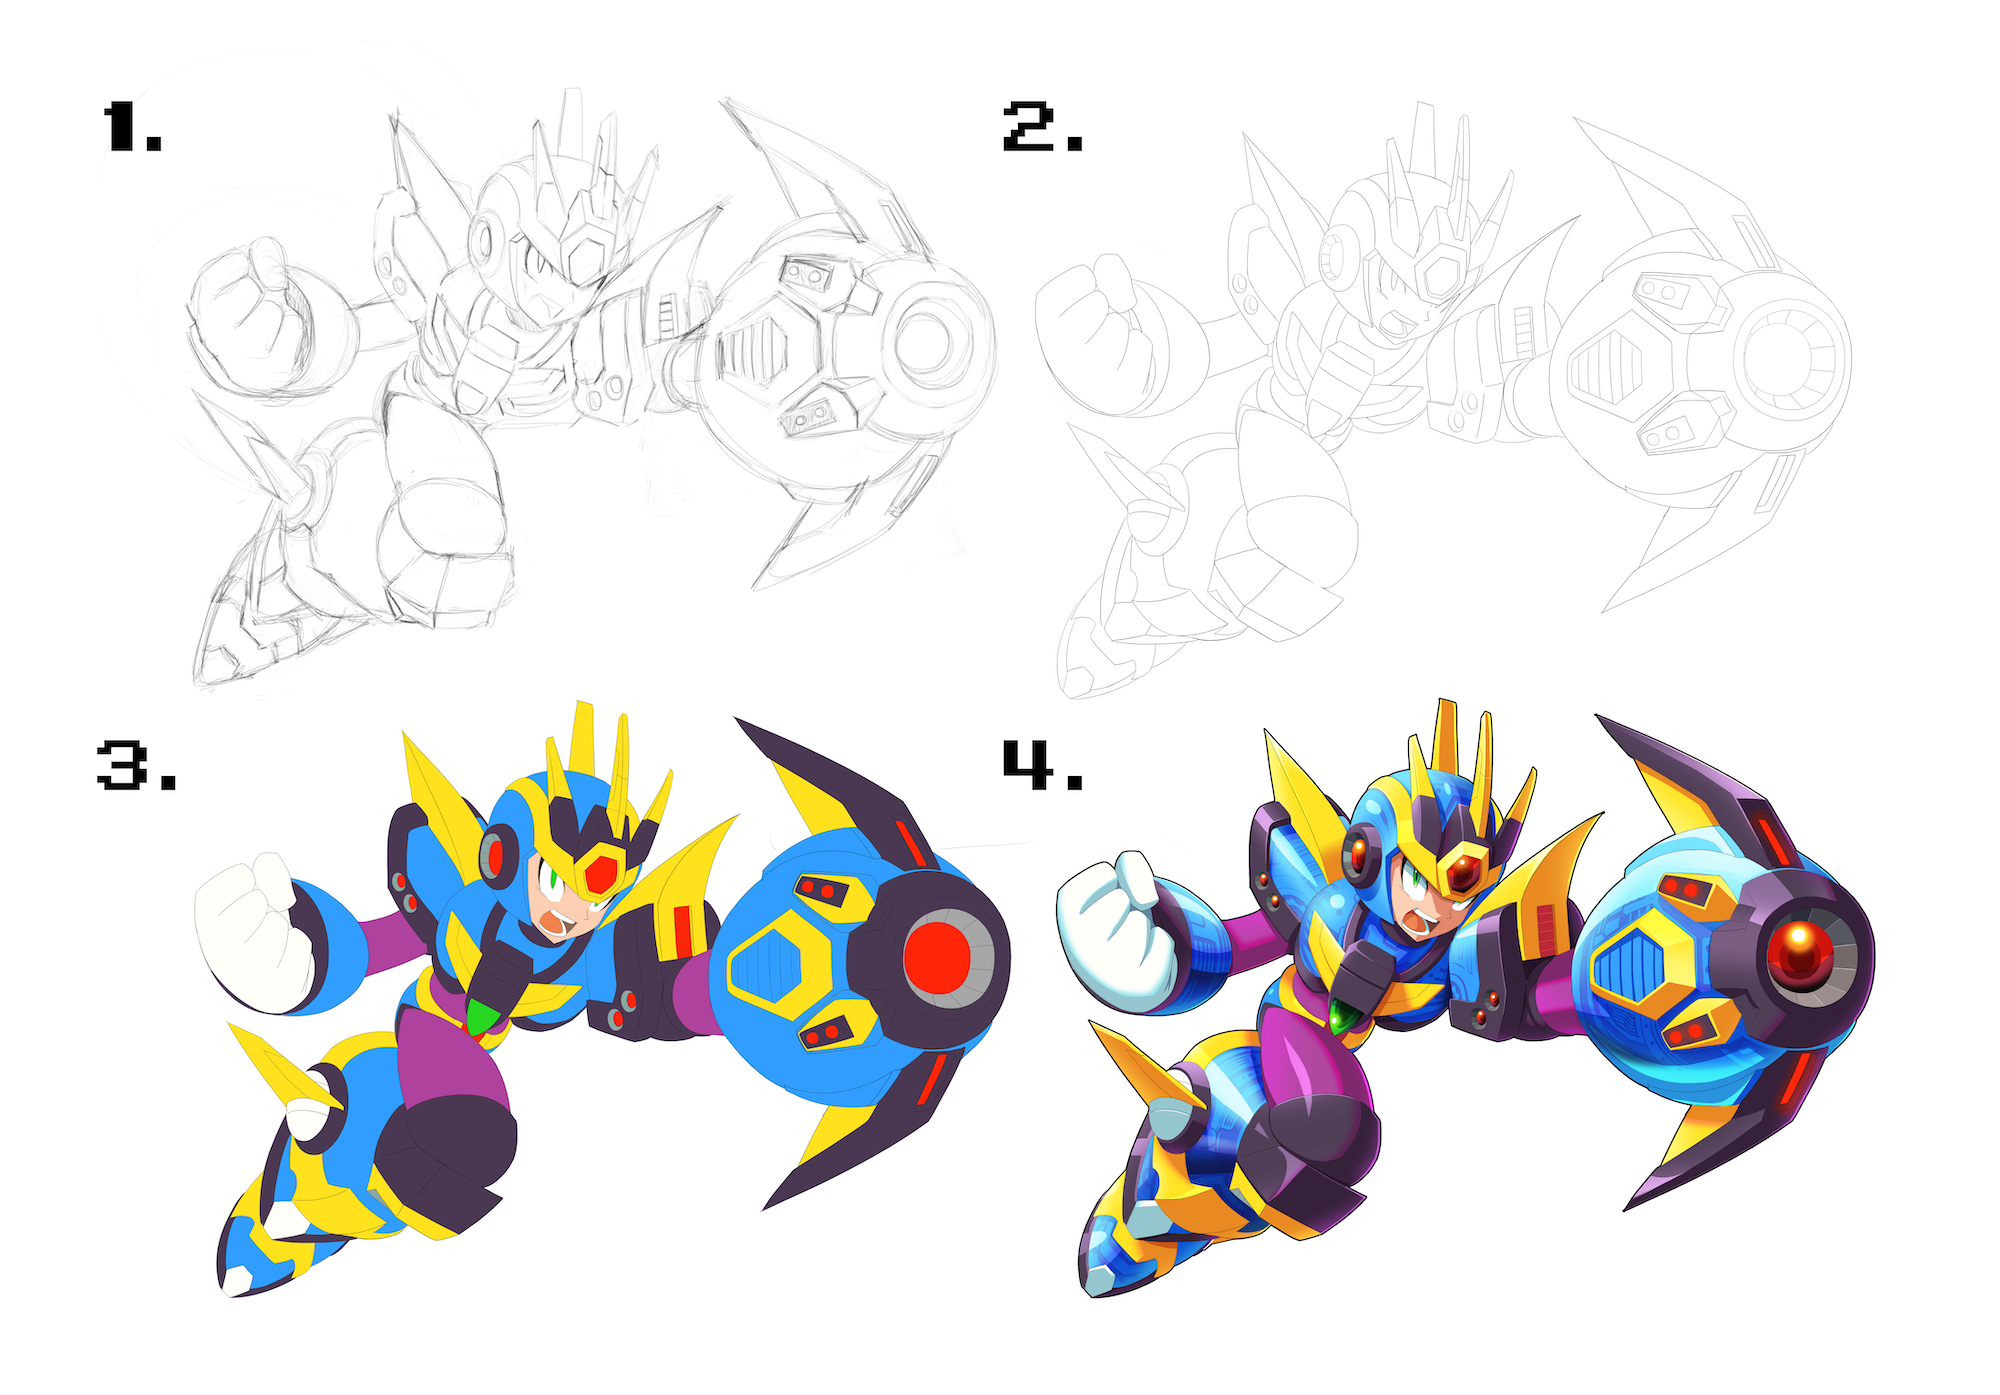 Art by ultimatemaverickx for the Mega Man X 1-8: The Collection vinyl box set available from Lacedrecords.com